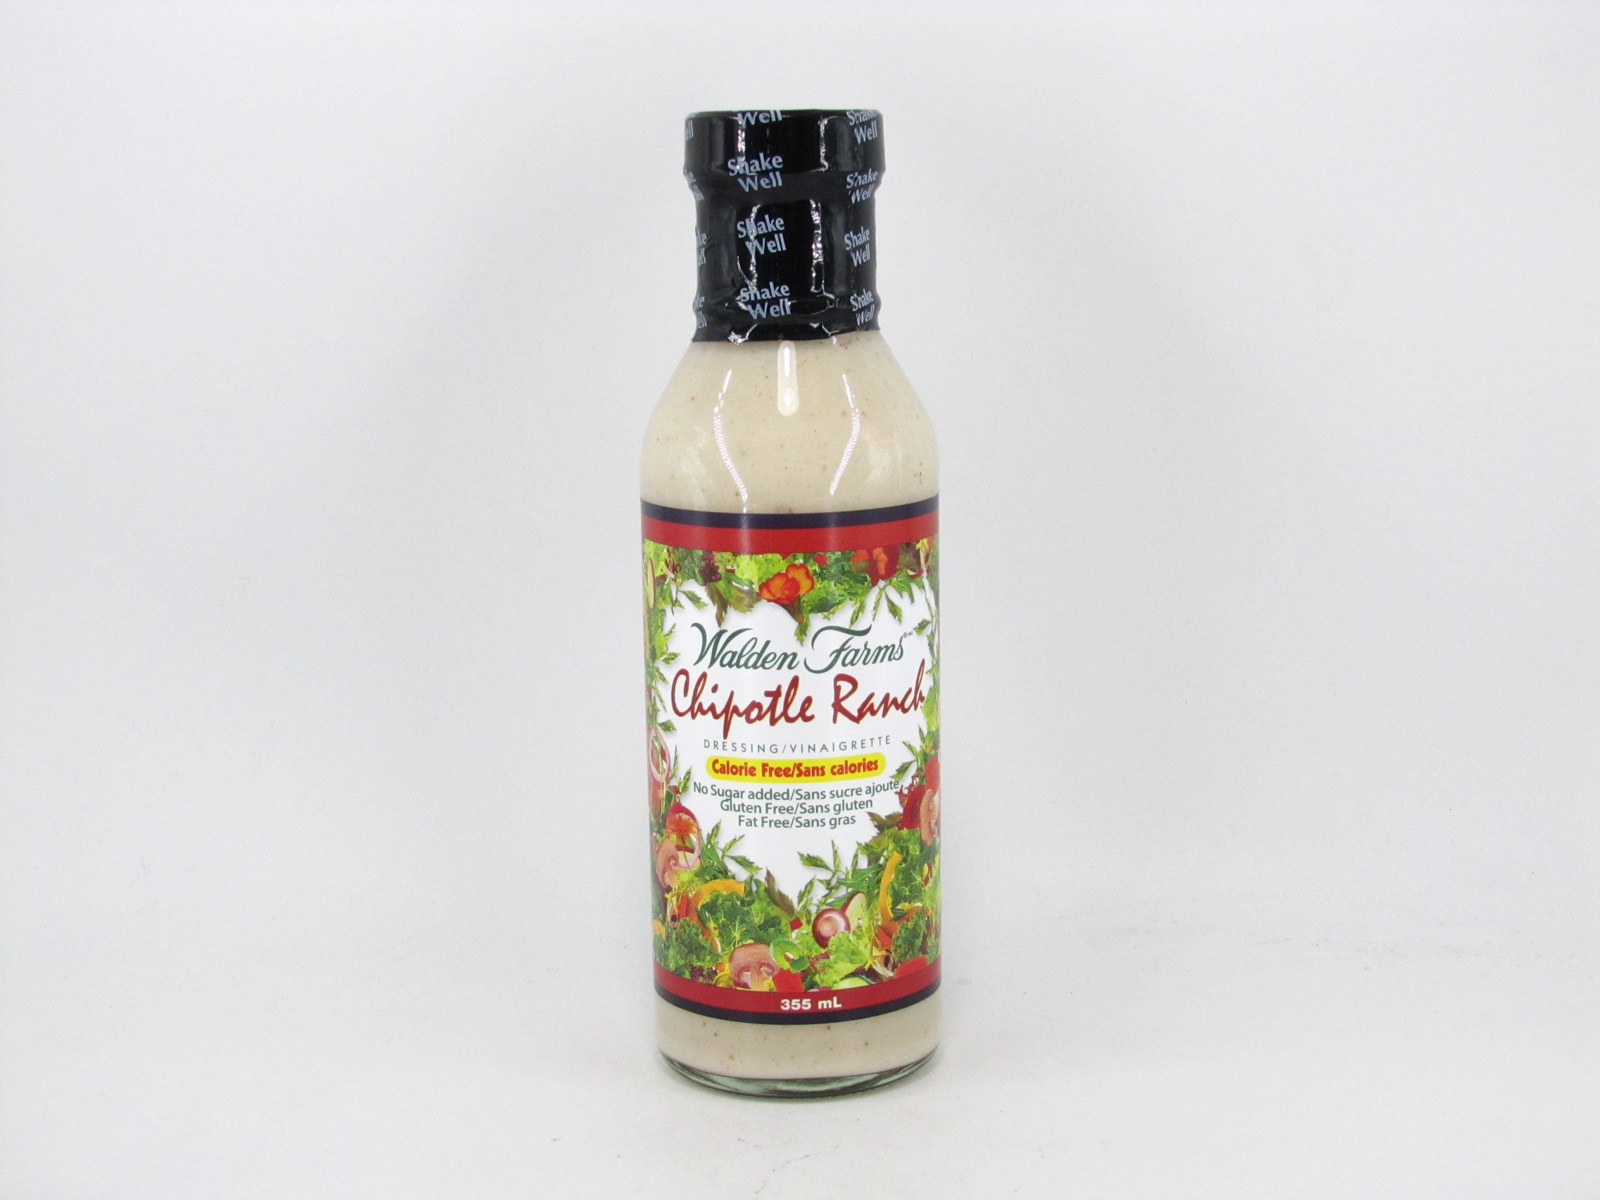 Waldenfarms Salad Dressing - Chipotle Ranch - front view